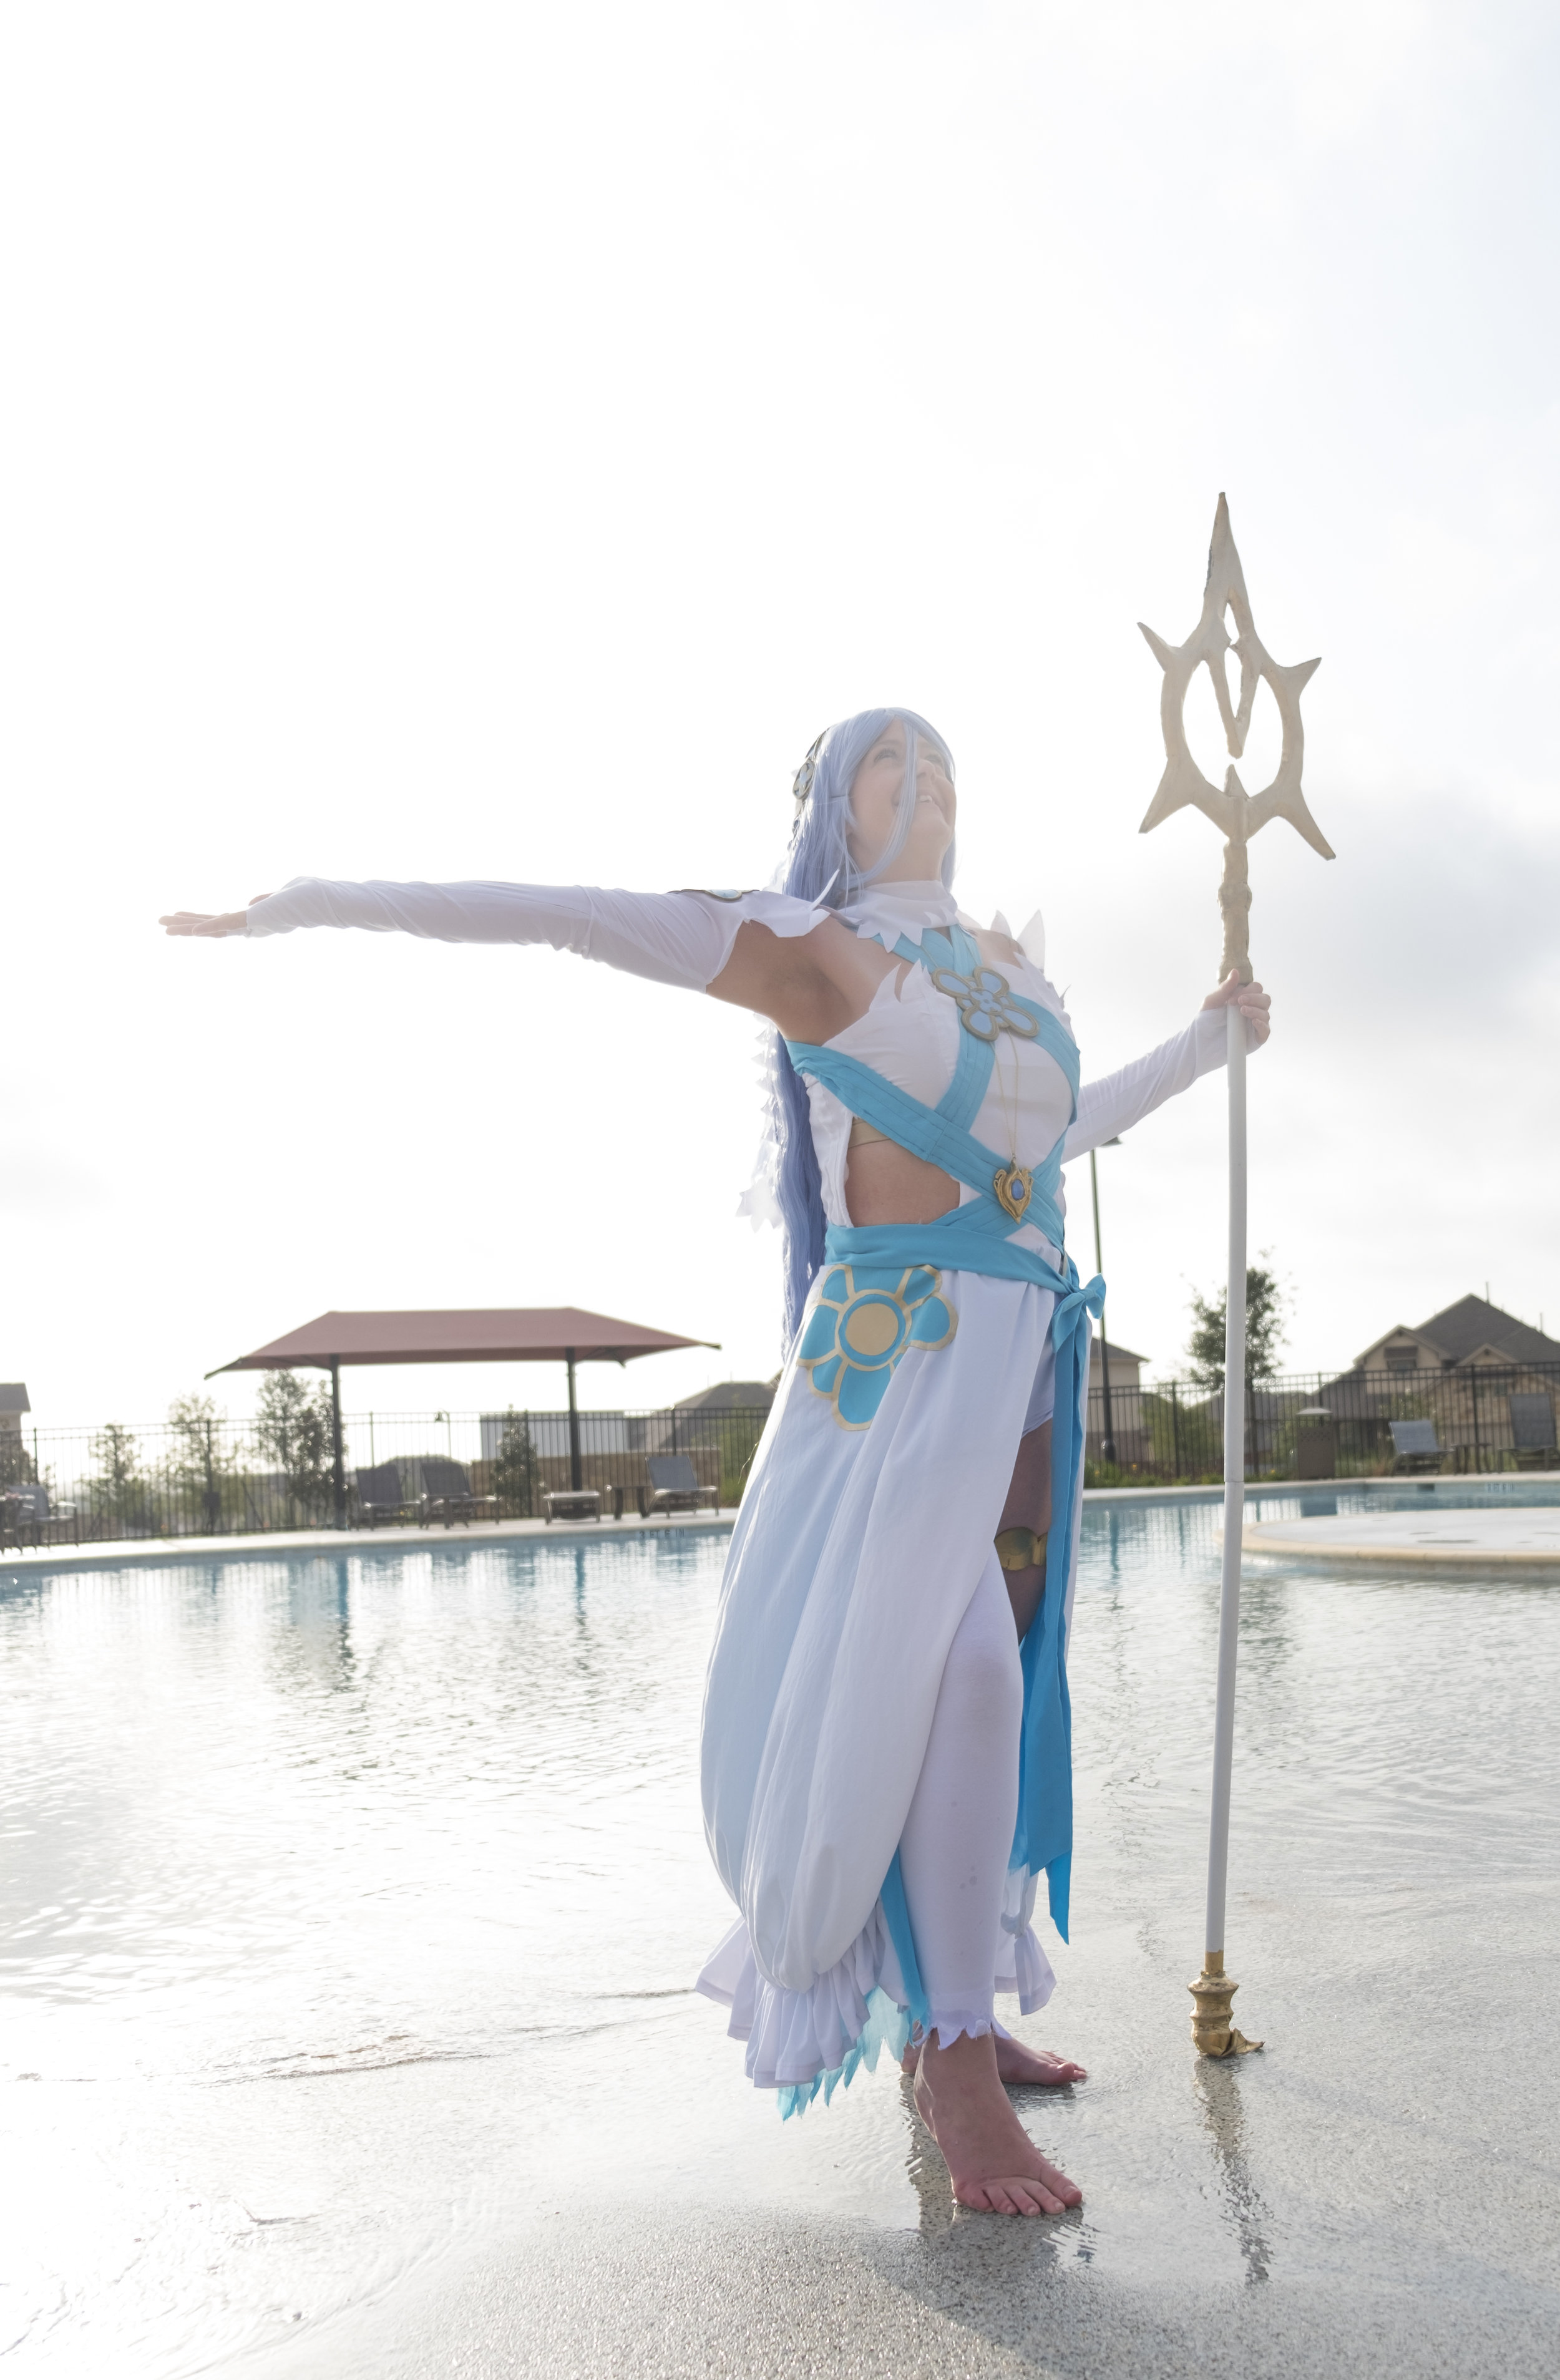 Allybelle Cosplay in Azura from Fire Emblem cosplay